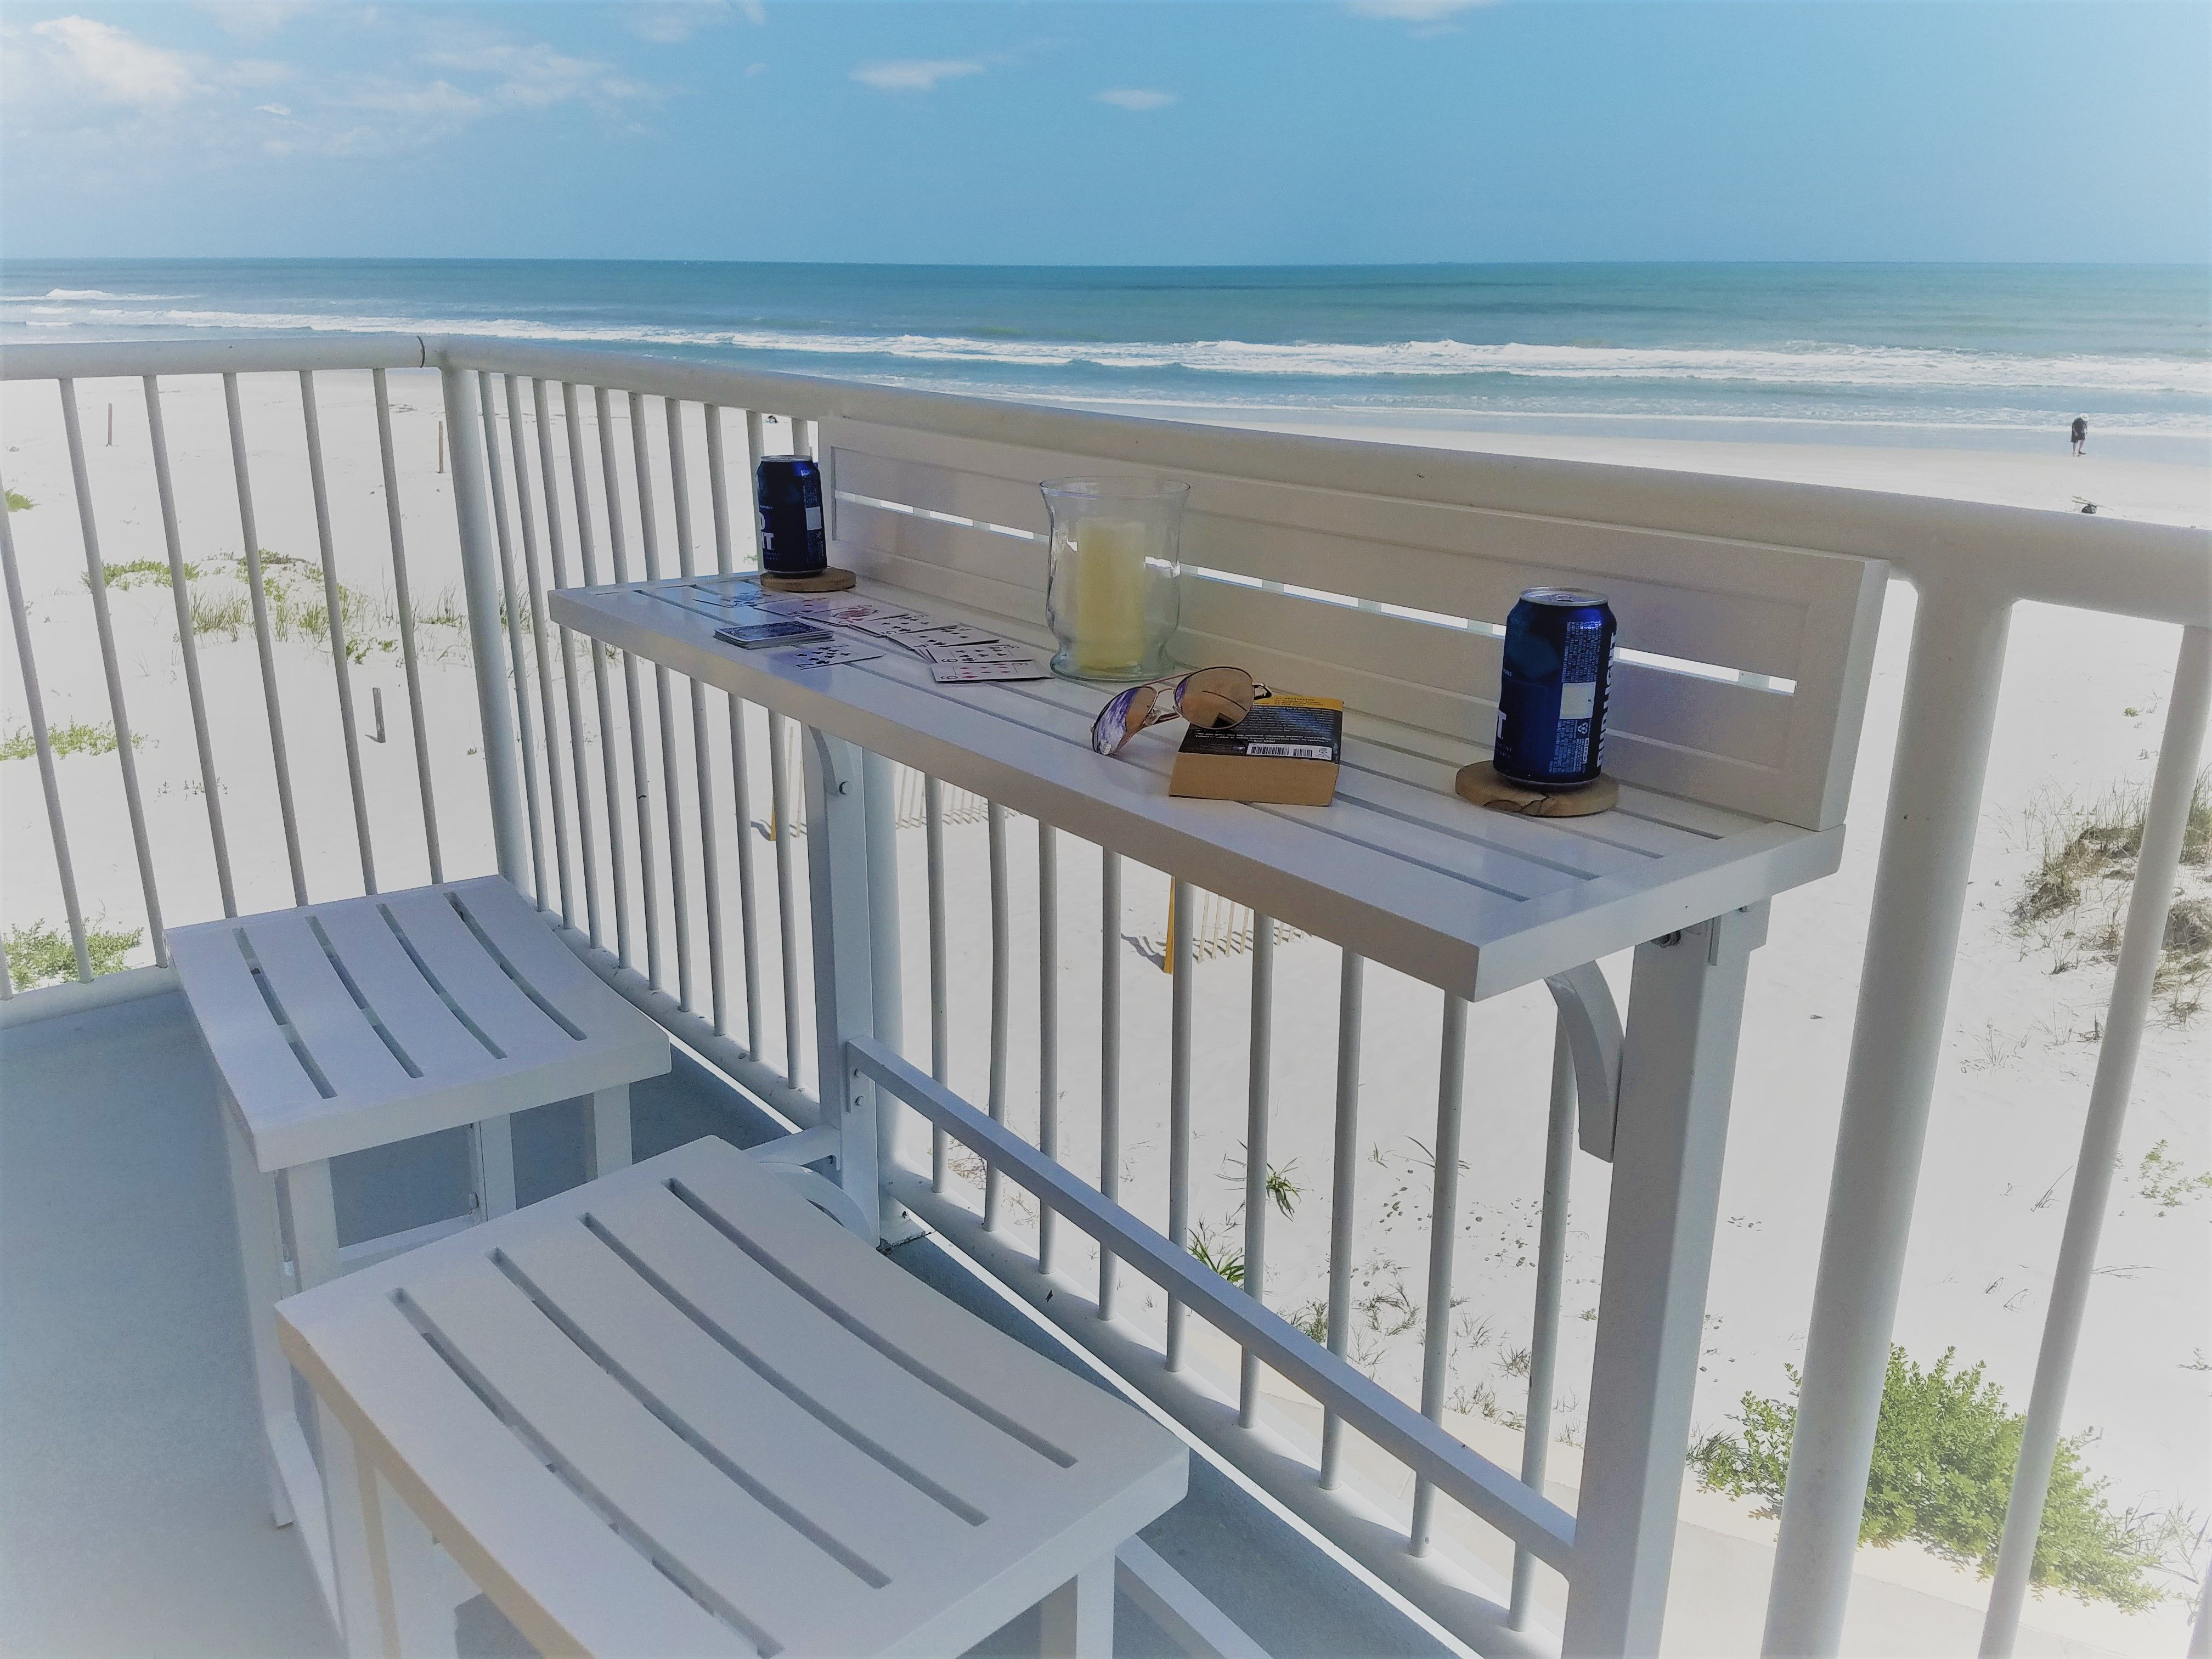 Apartment balcony ideas pictures to pin on pinterest - The Perfect Solution For Any Balcony The Miyu Furniture Balcony Bar Requires Minimal Area Yet Retains Complete Functionality The Sleek Design Allows You